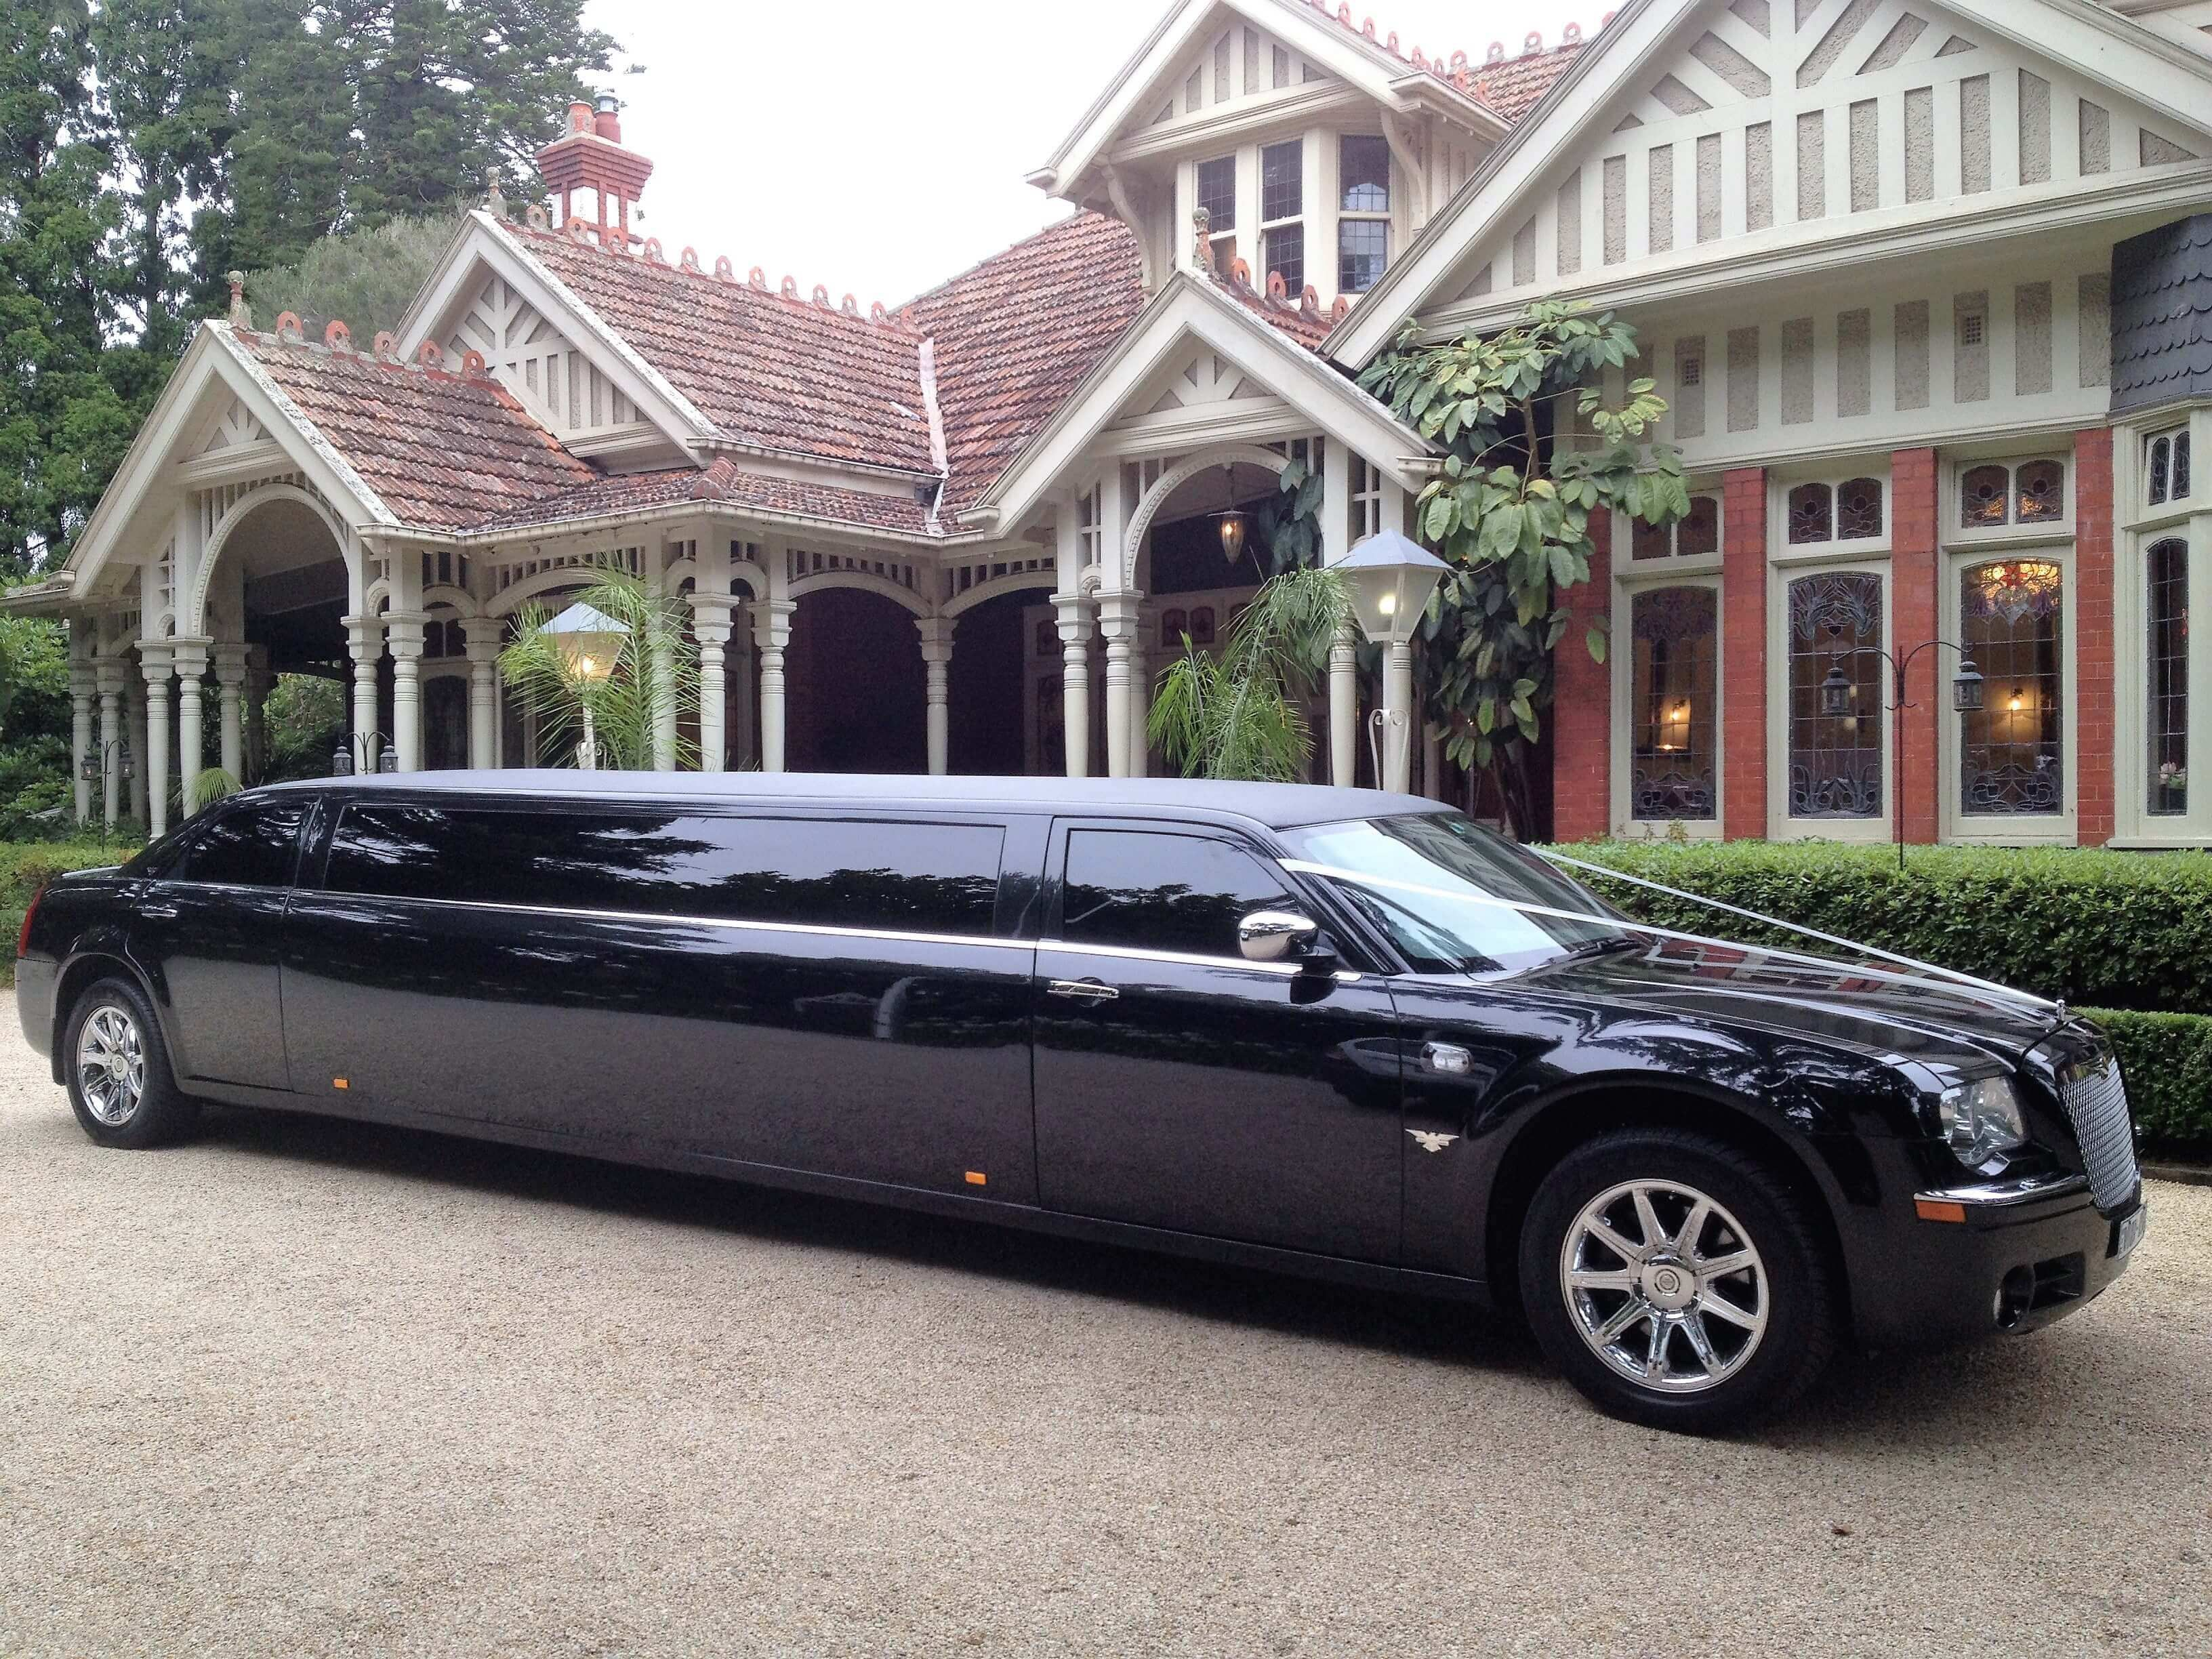 Get Your Personality Be Allured With Best Bay Area Limo Service Limousine Rental Limousine Atlantic City